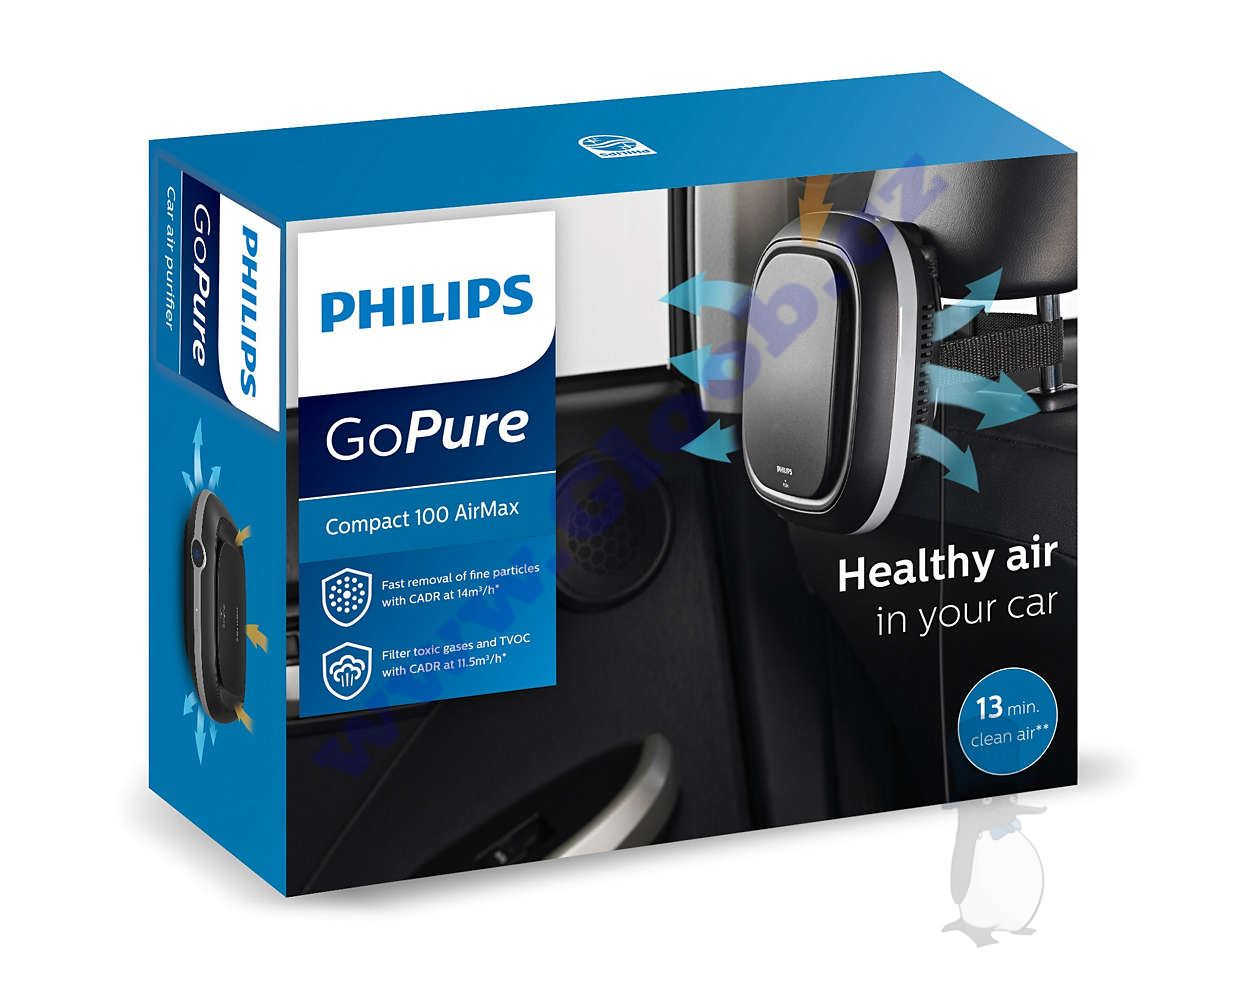 Philips Compact 100 Air Max